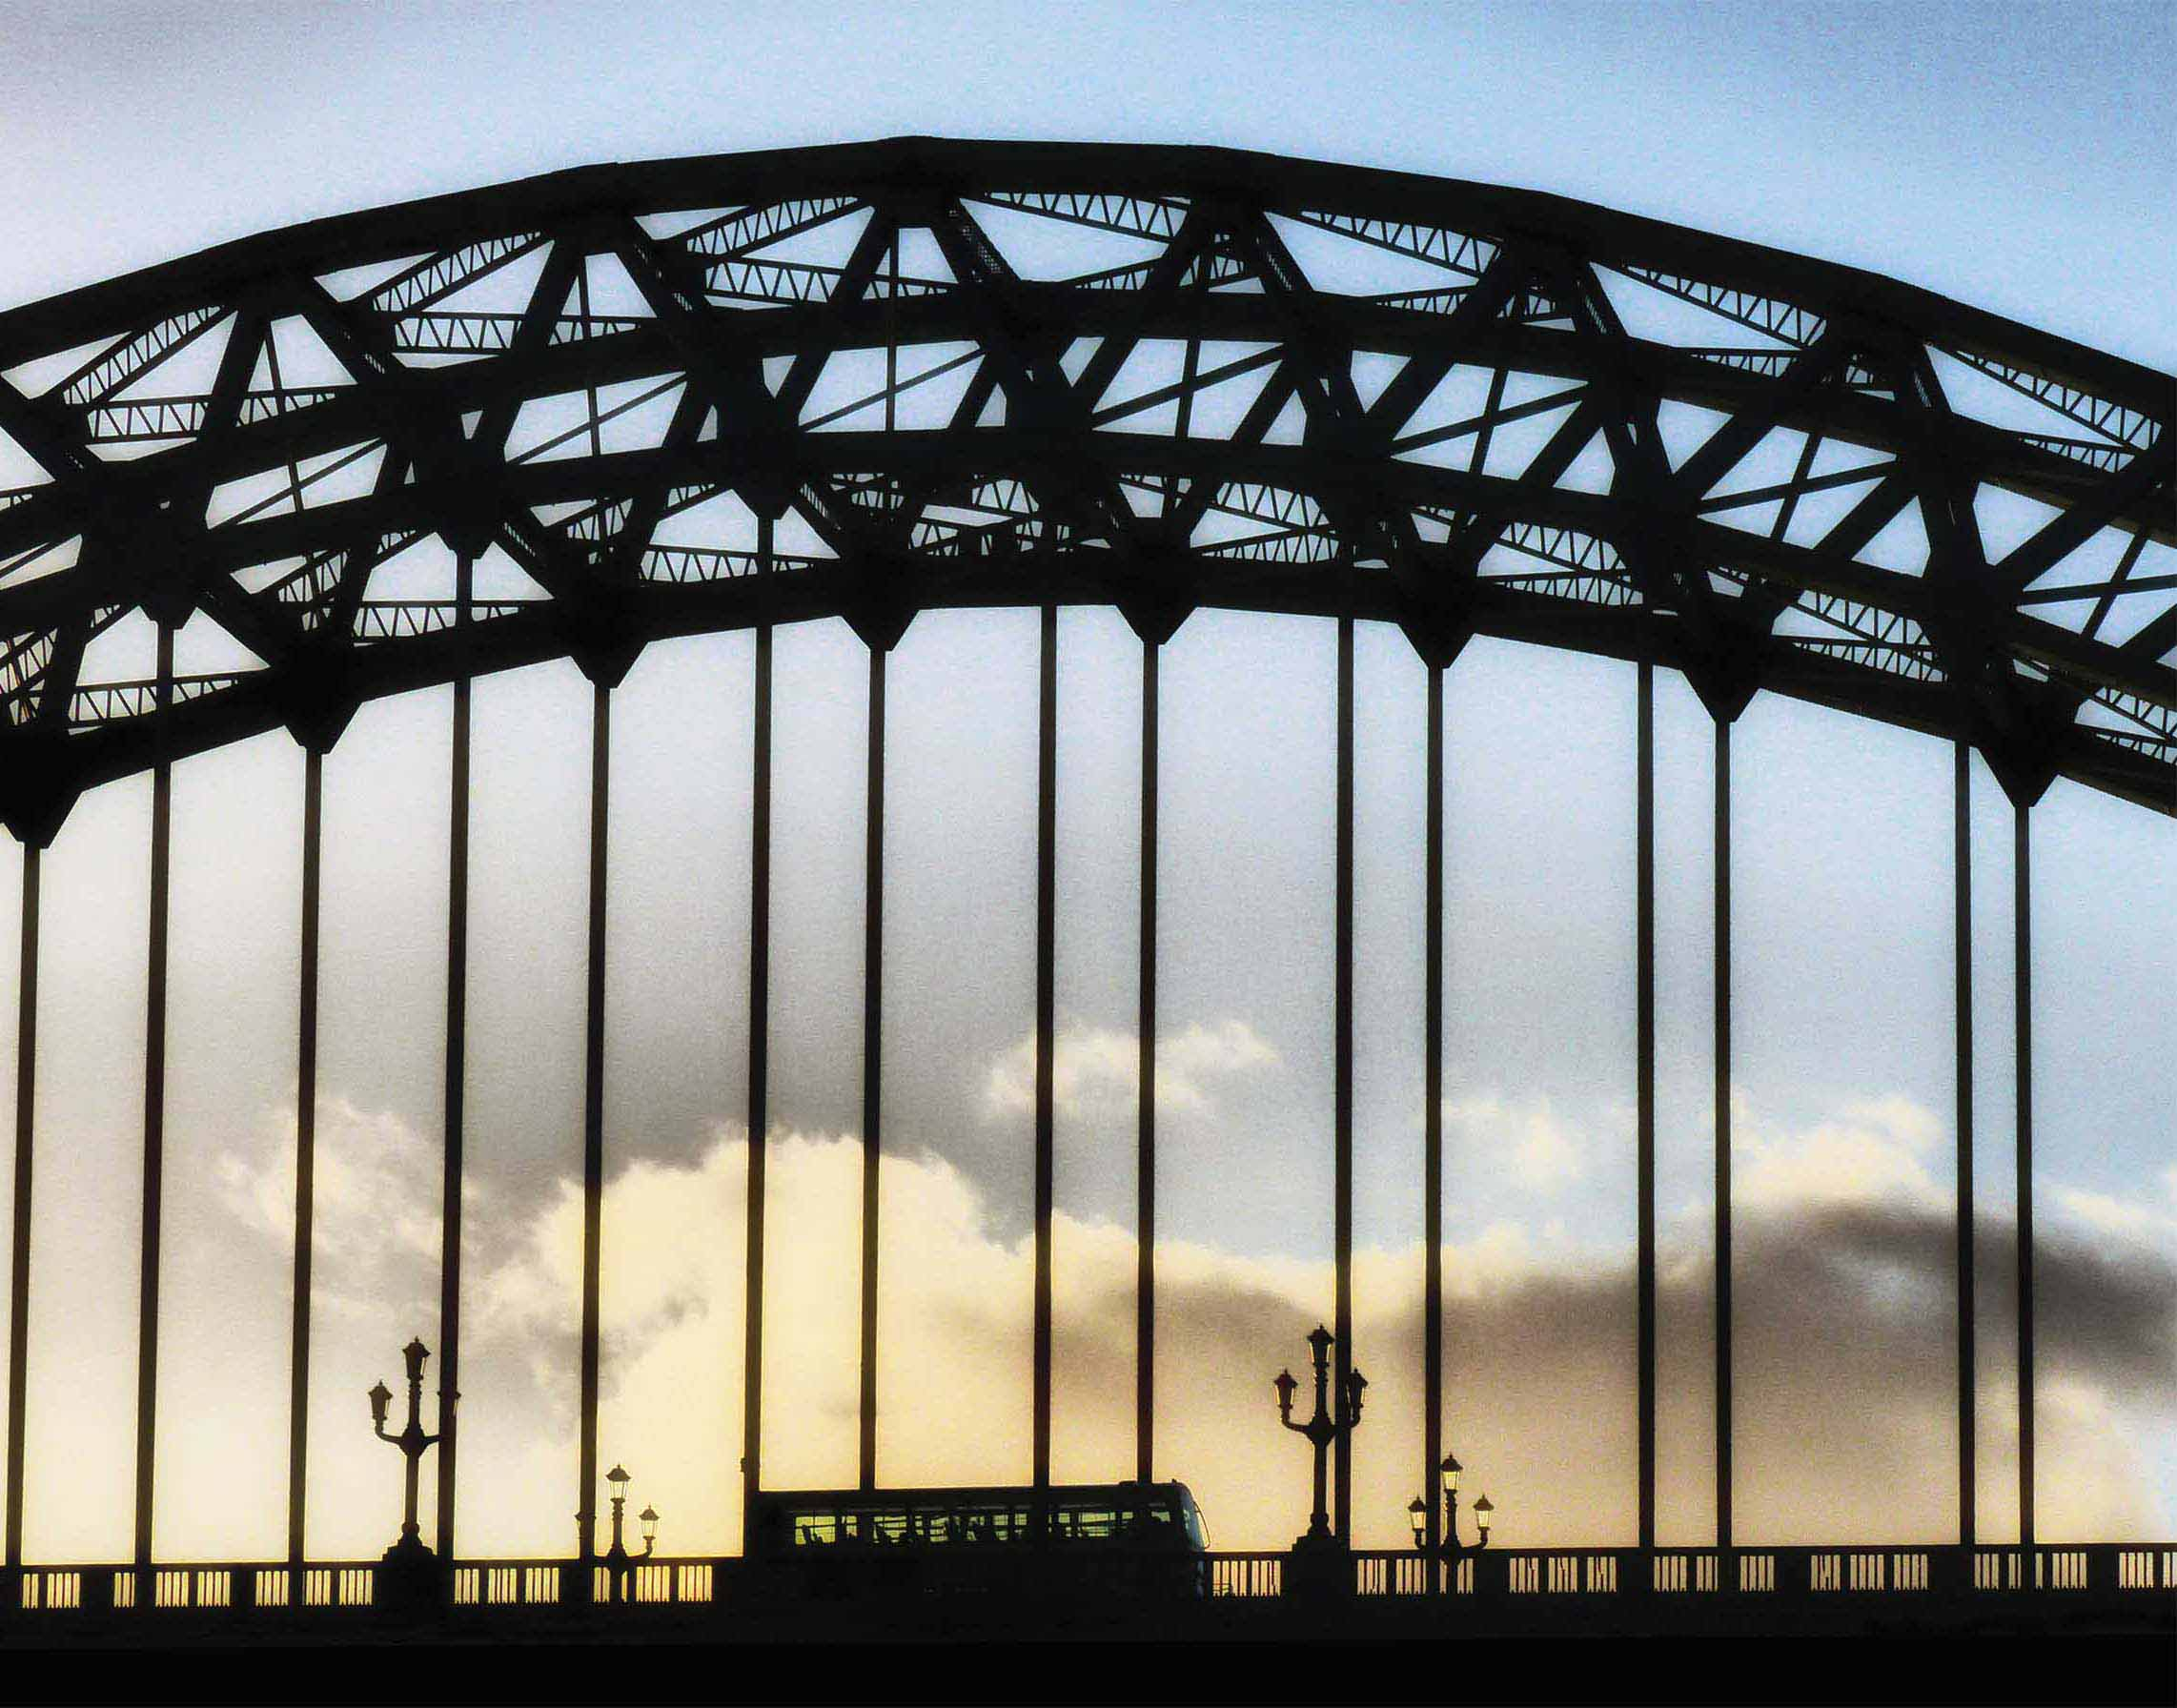 Arched bridge and bus silhouetted against sunset sky